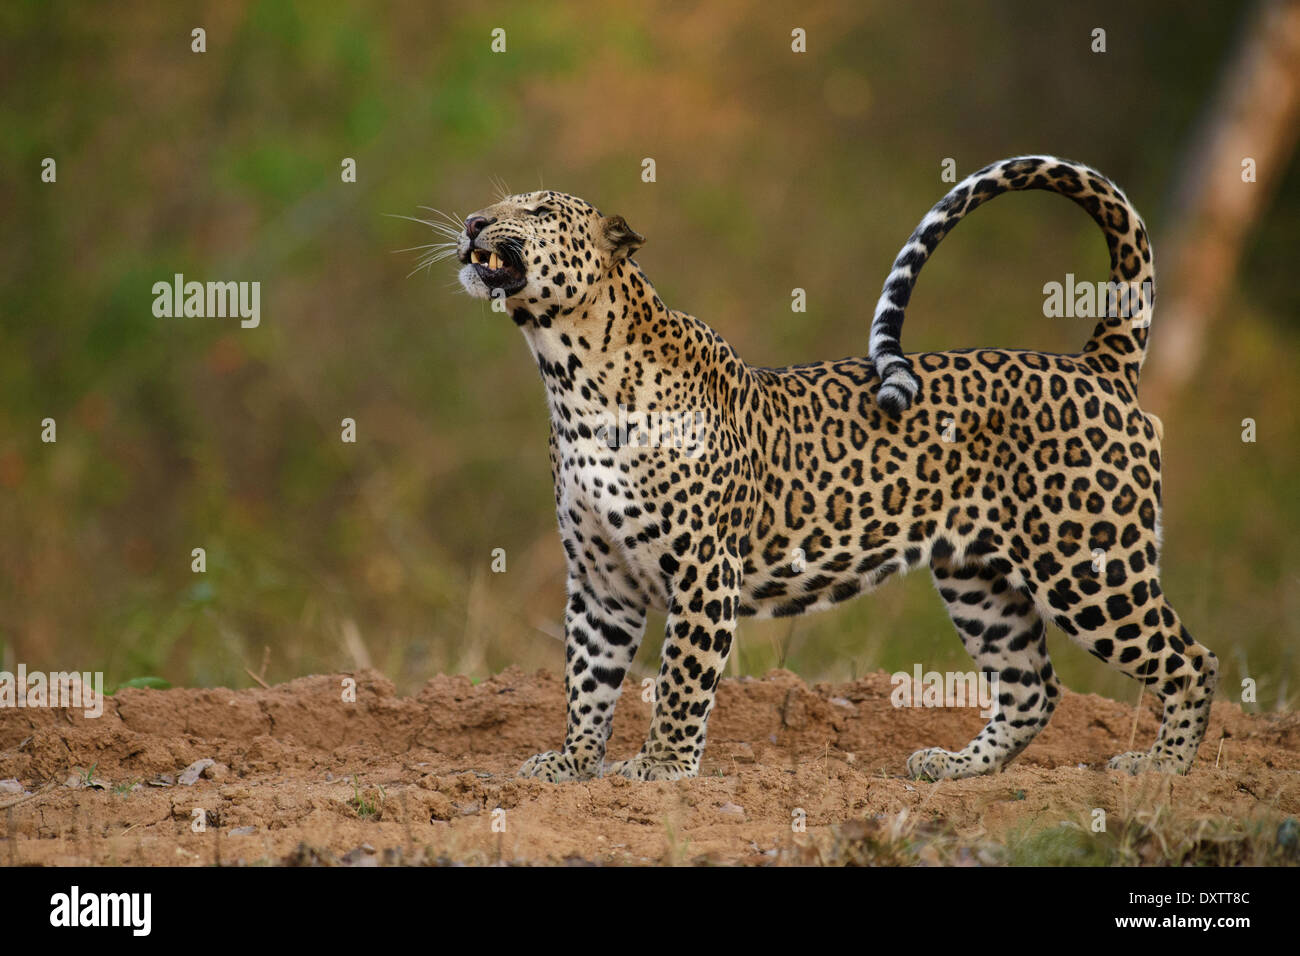 Male Indian leopard walking snarling at a pesky bee while on a vehicle track in Nagarahole National Park, India - Stock Image